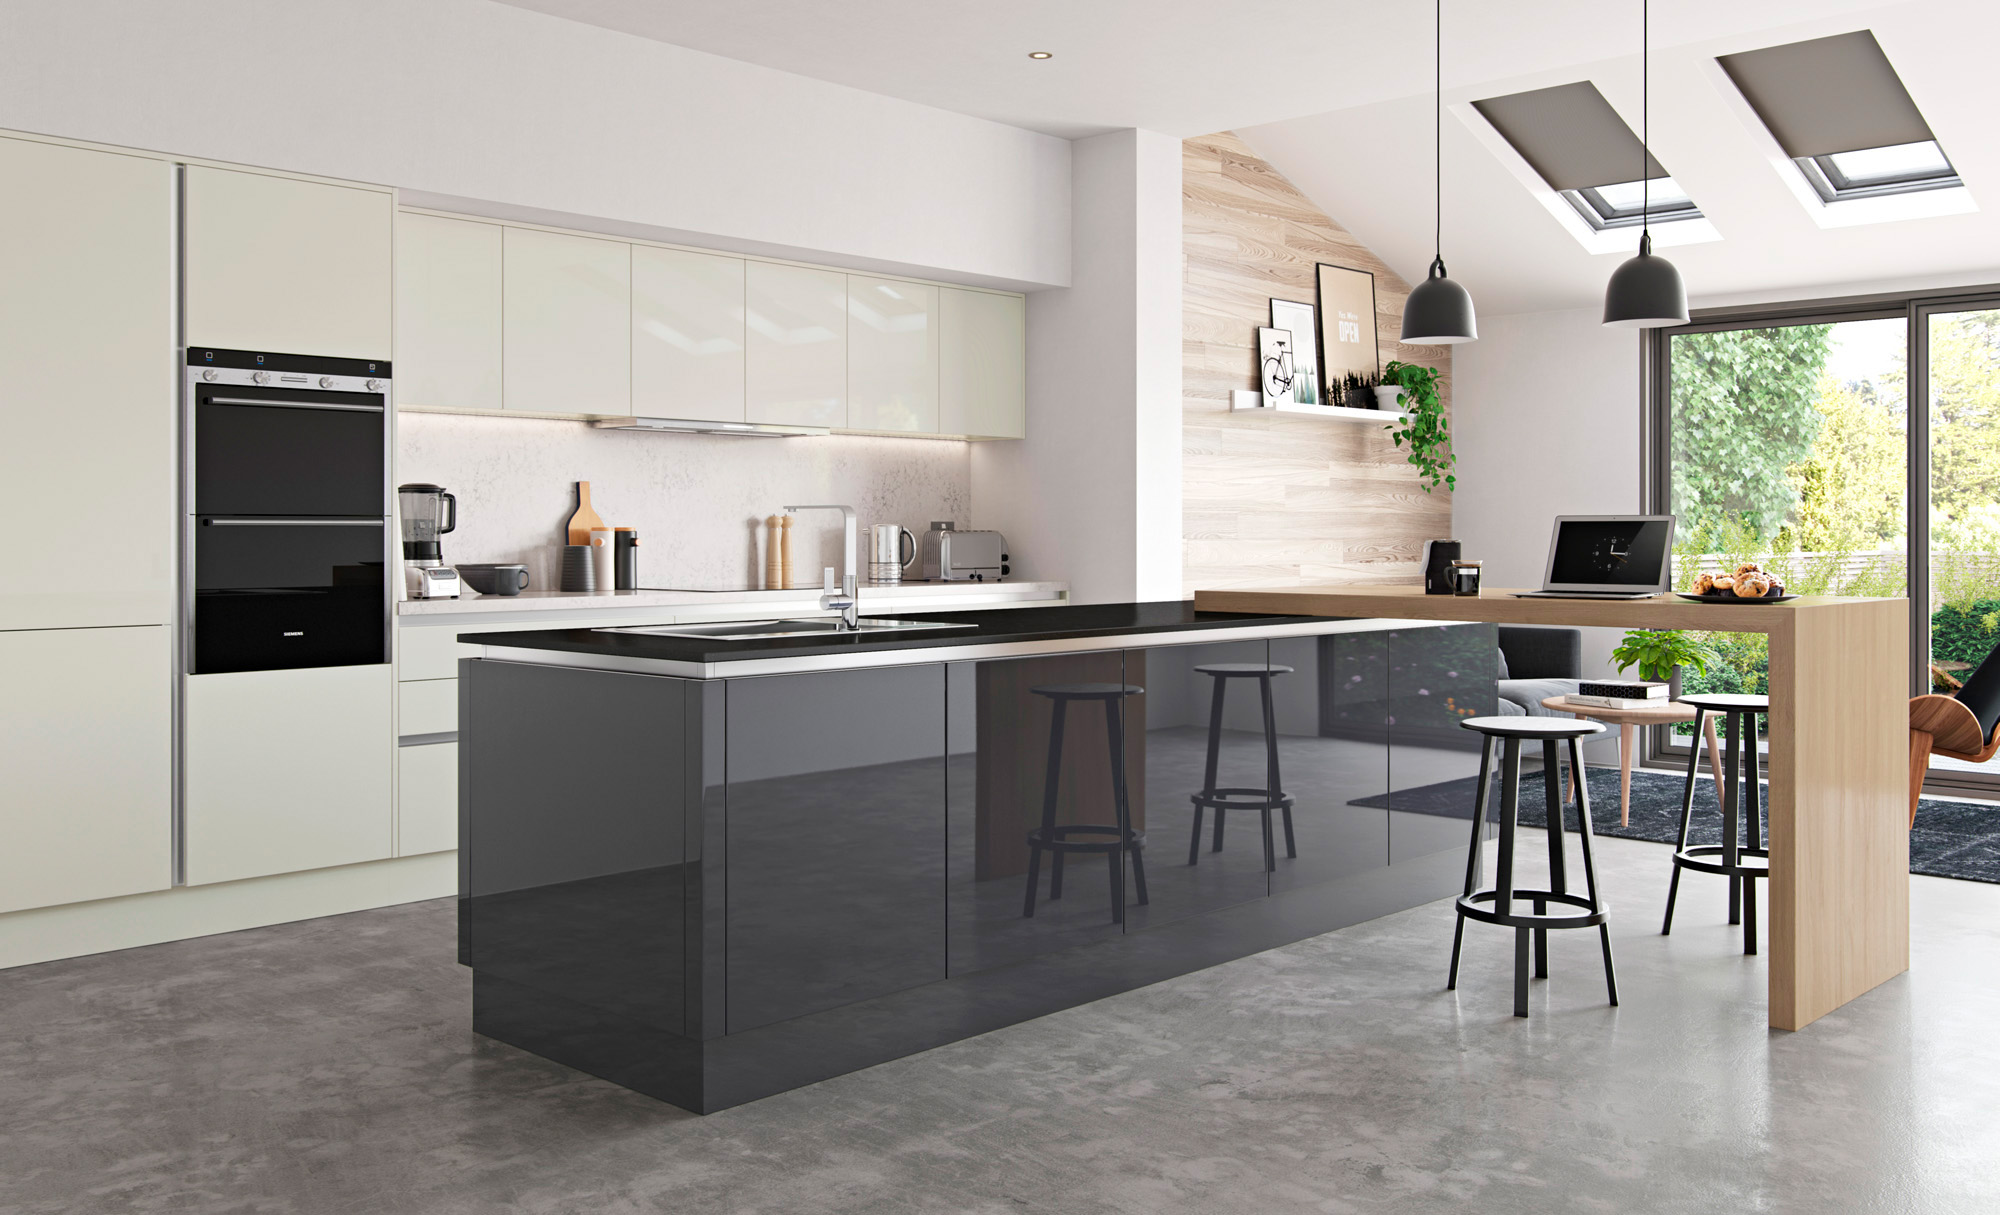 Zola Gloss Handleless Kitchen in Porcelain & Graphite